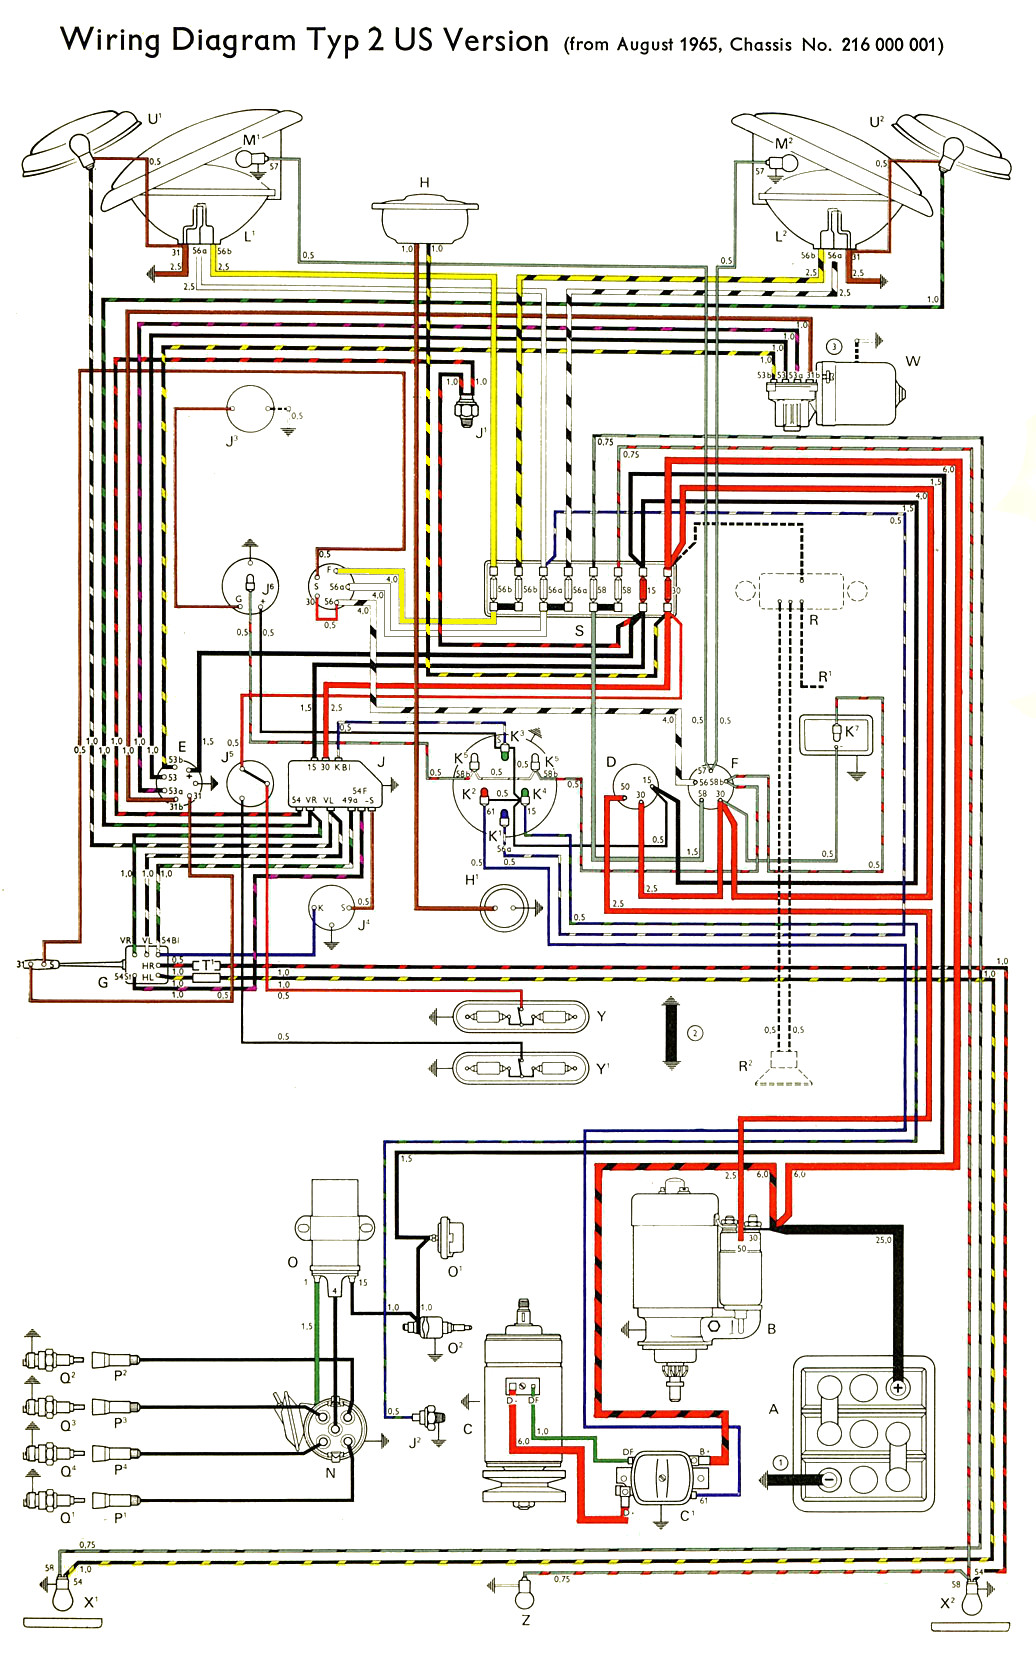 thesamba com type 2 wiring diagrams rh thesamba com 1981 vanagon wiring diagram vanagon radio wiring diagram